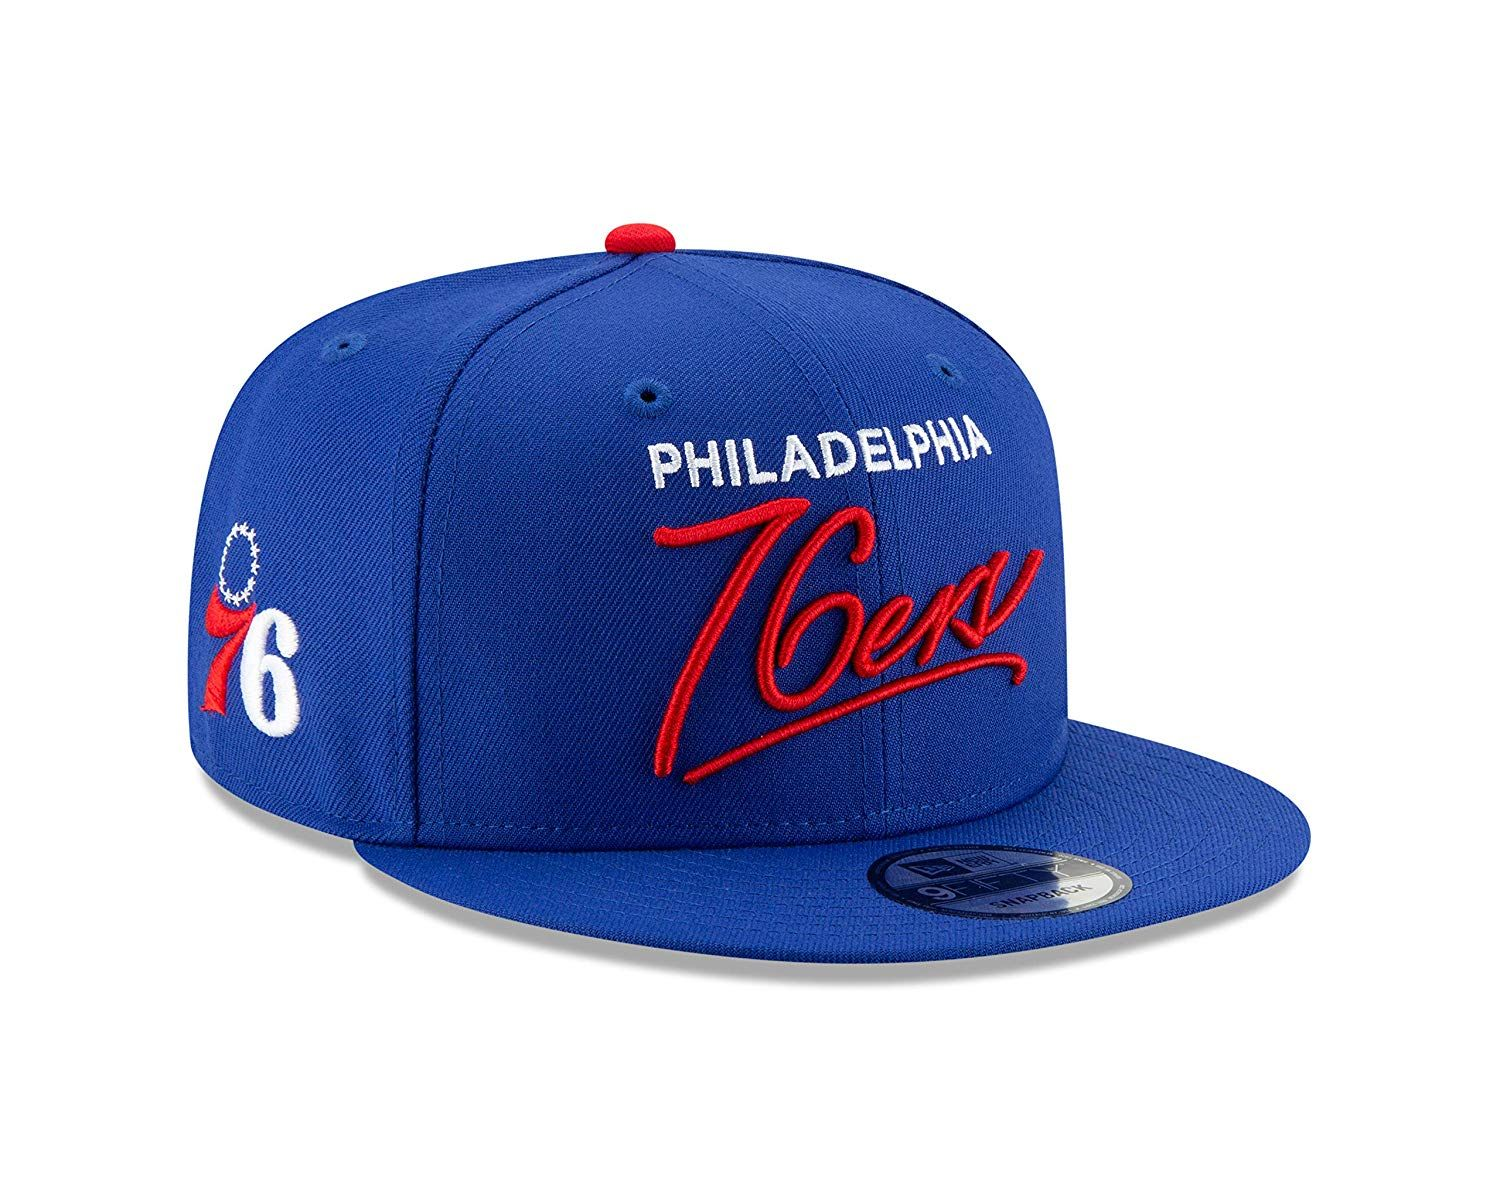 8e343ea4c439c6 New Era Philadelphia 76ers Script Turn Snapback 9FIFTY Adjustable NBA Hat,  $29.95